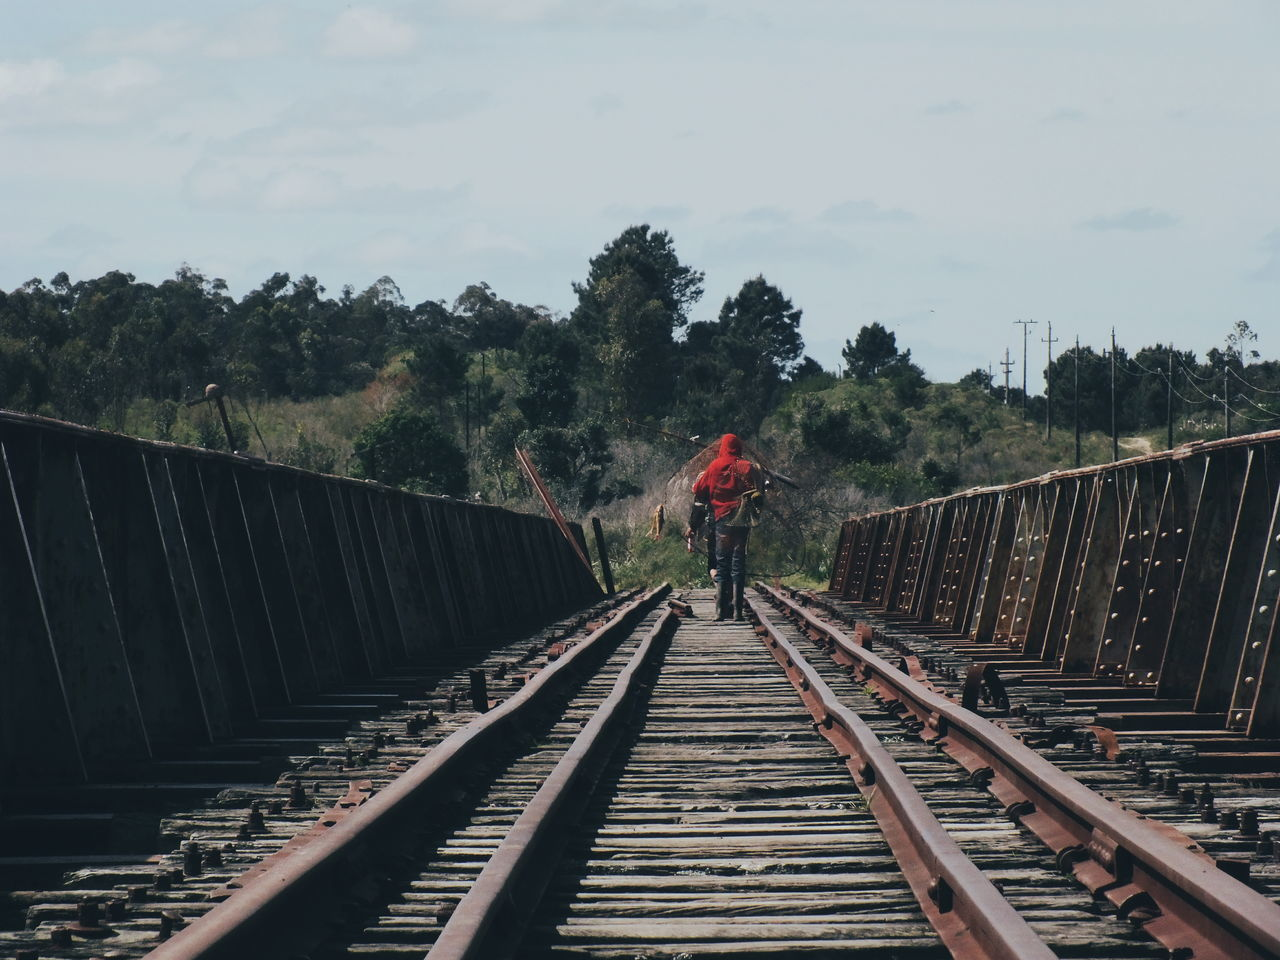 Pescadores sobre el puente abandonado. Transportation Railroad Track Outdoors Person Day Horizontal Adult Rail Transportation Bridge Photooftheday Photo Photography Photoshoot Foto Showcase: October Landscape Tranquil Scene The Week On EyeEm